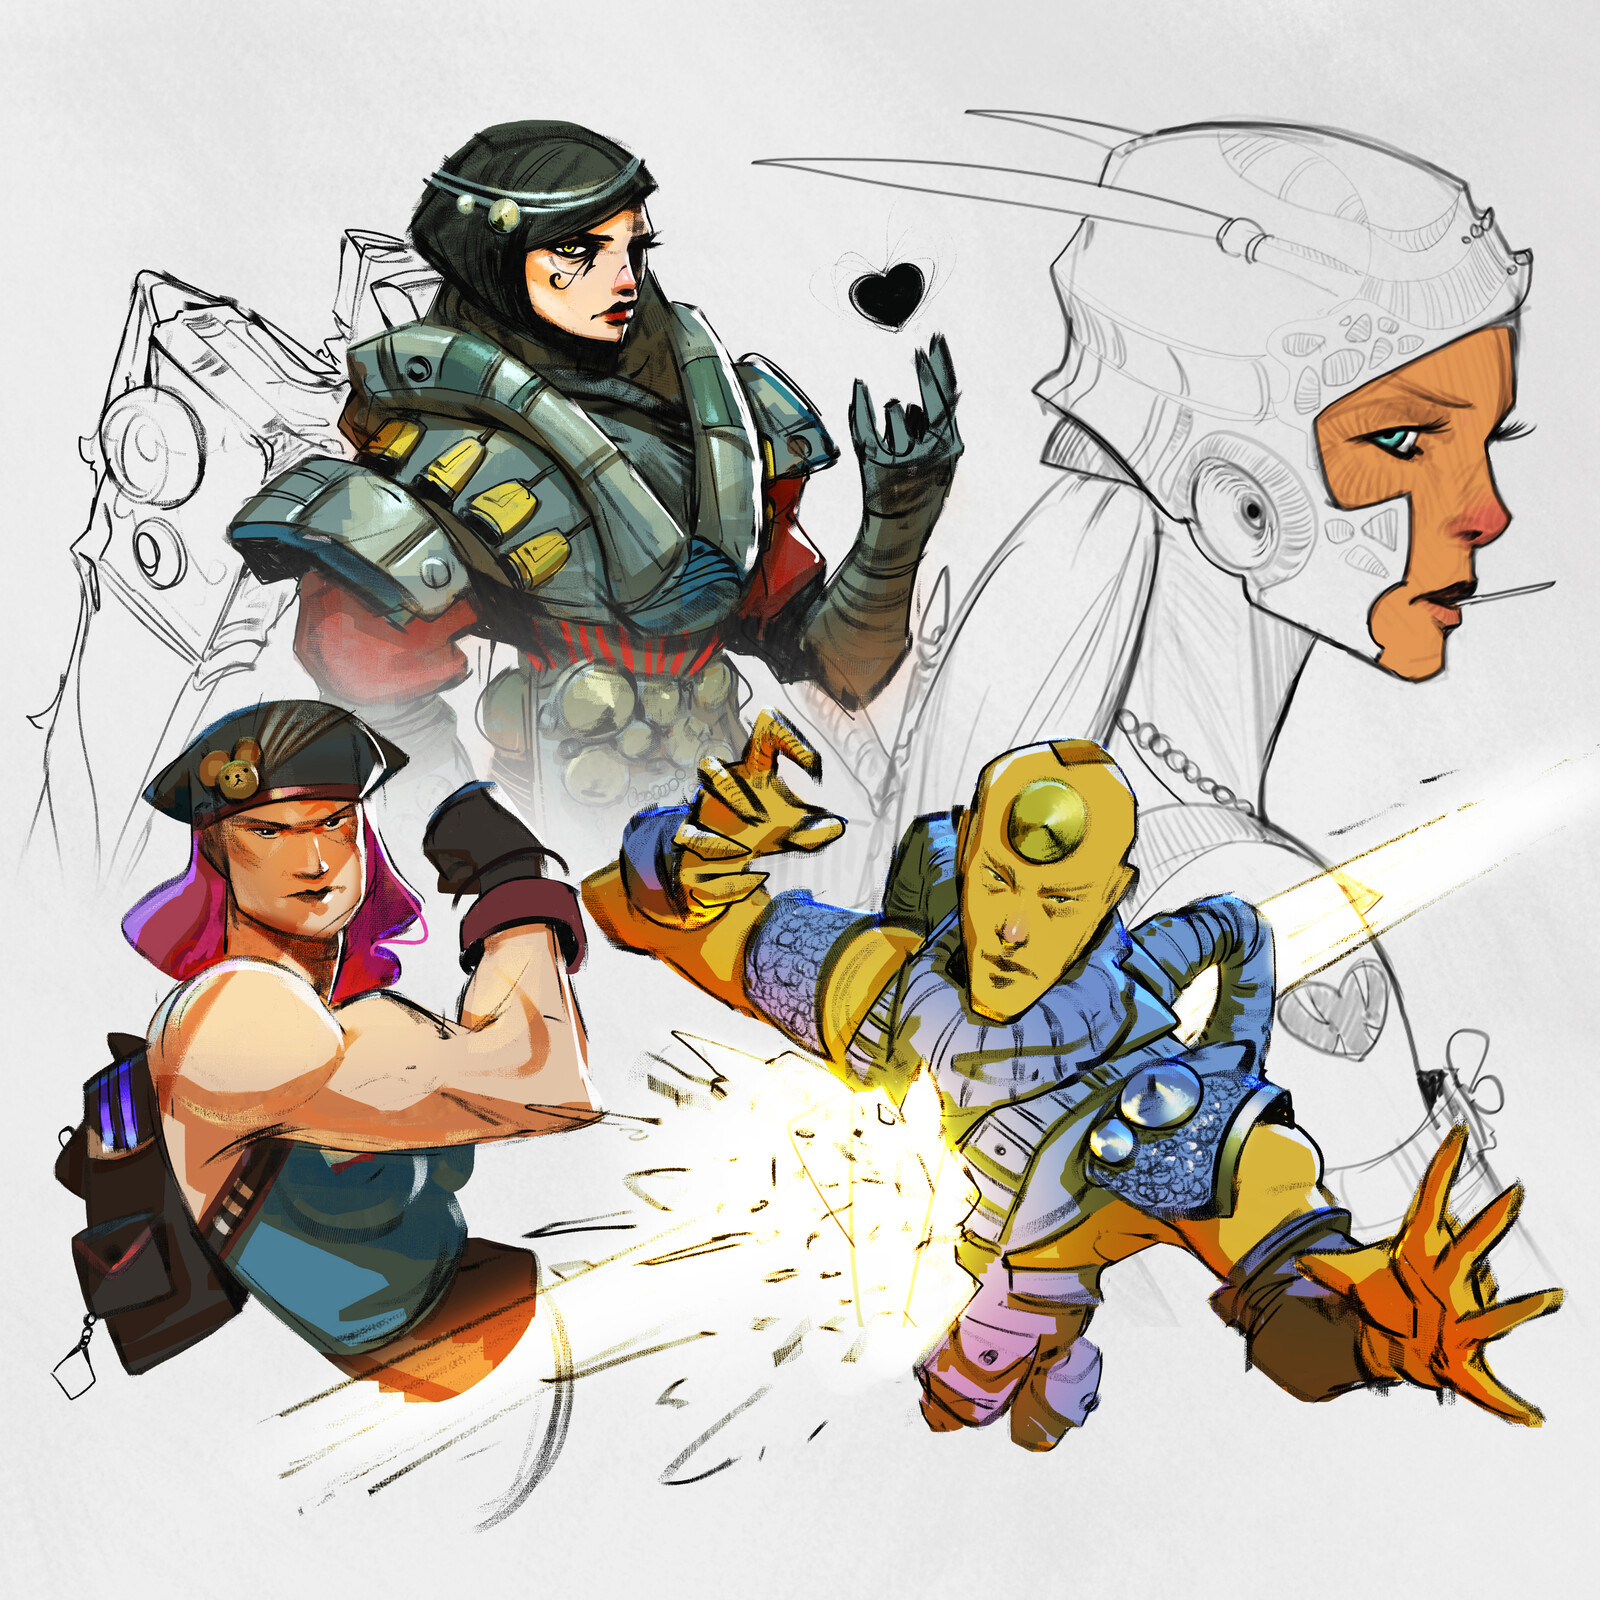 Pharah, and other sketches